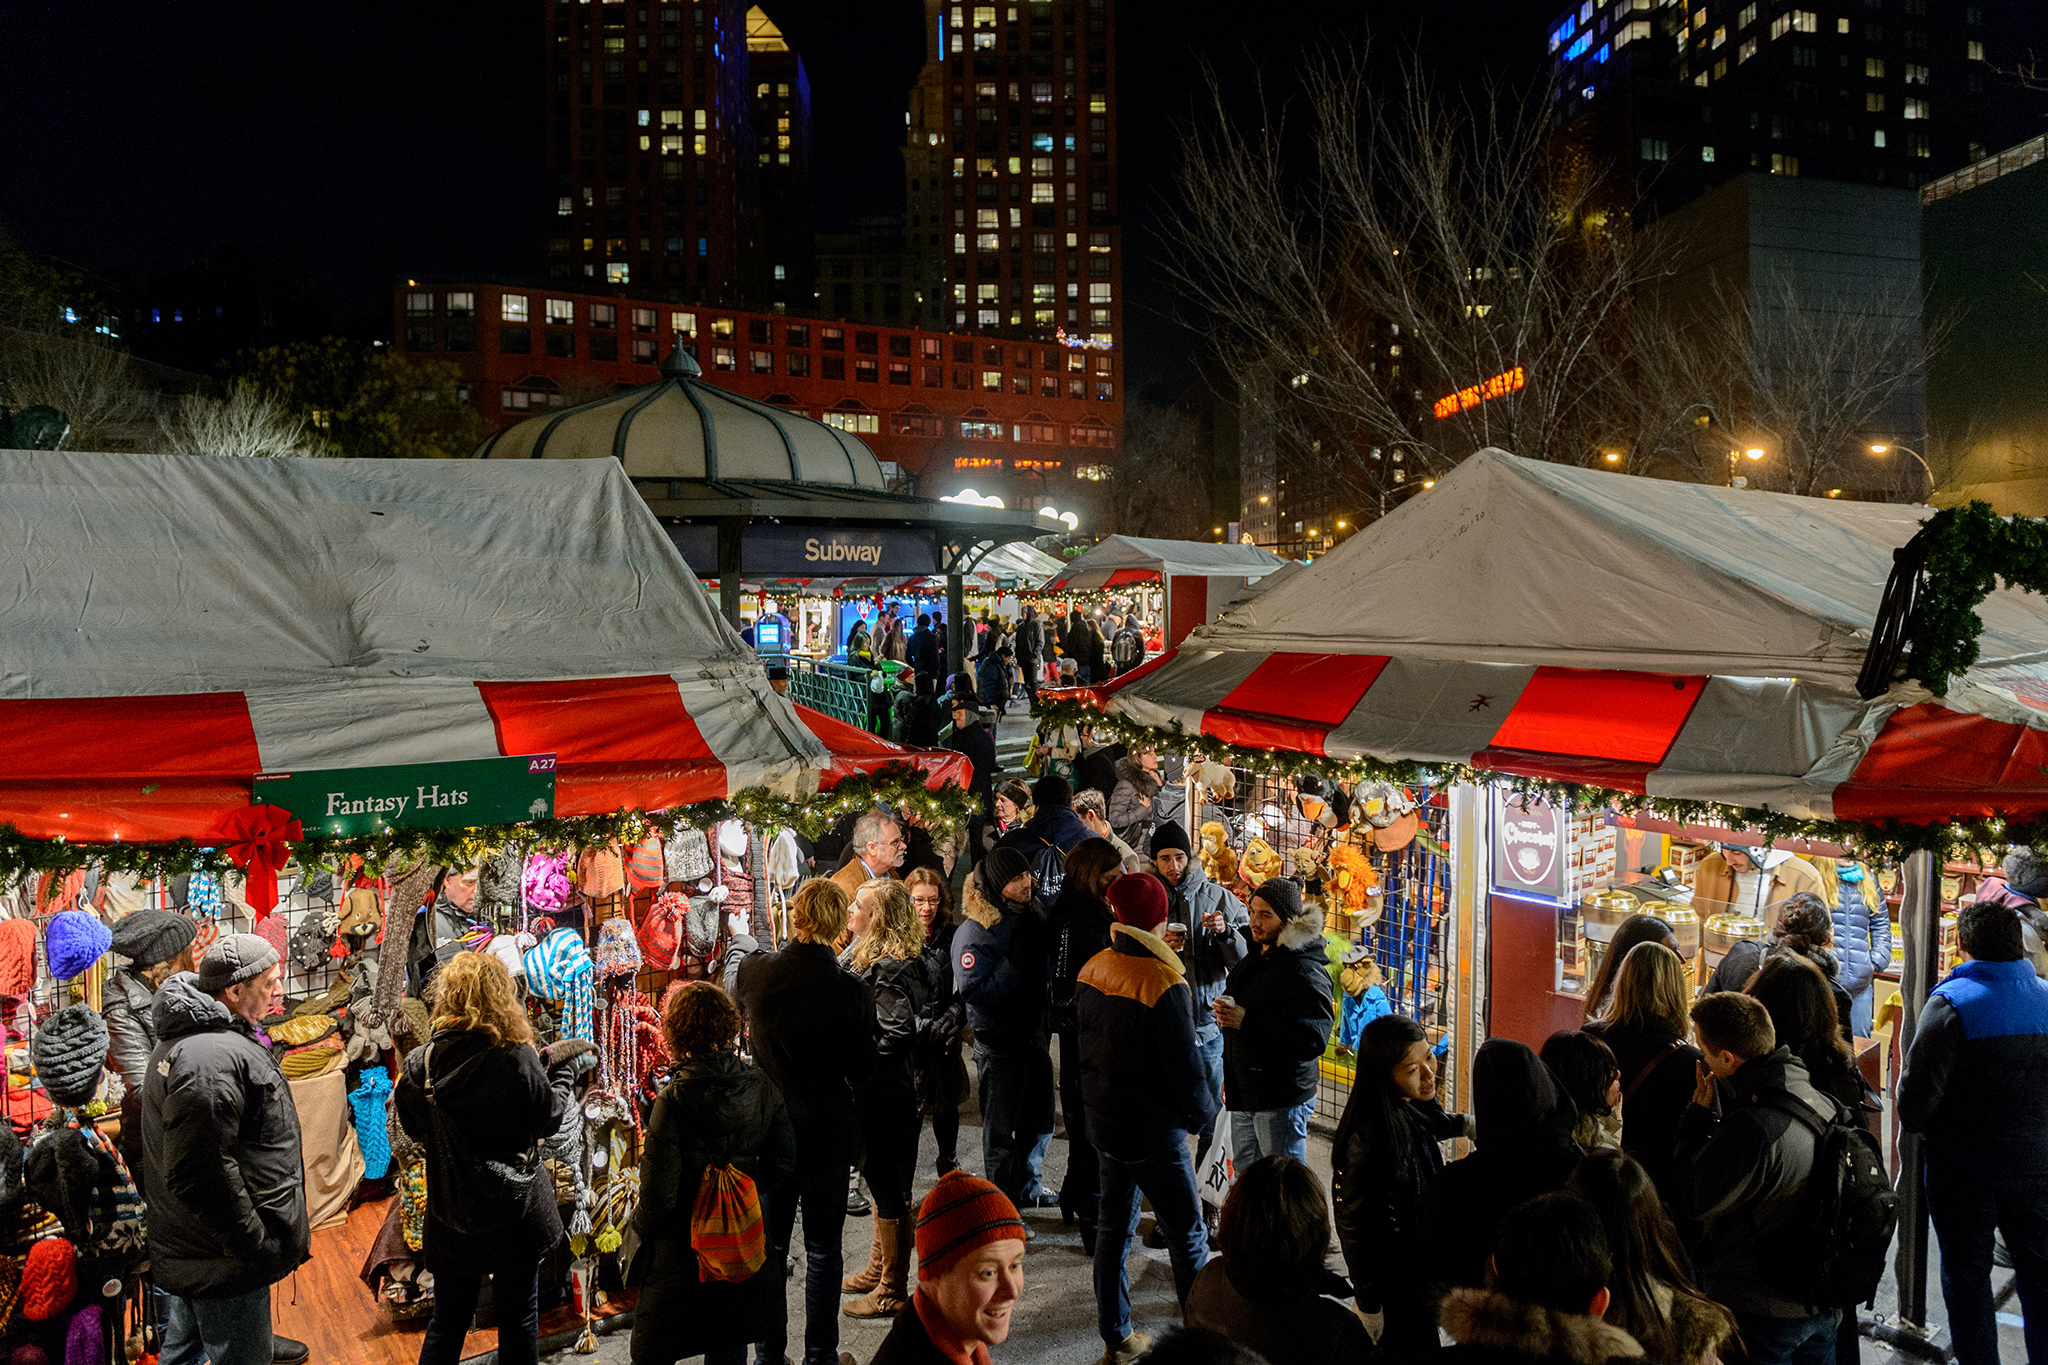 Union Square holiday market